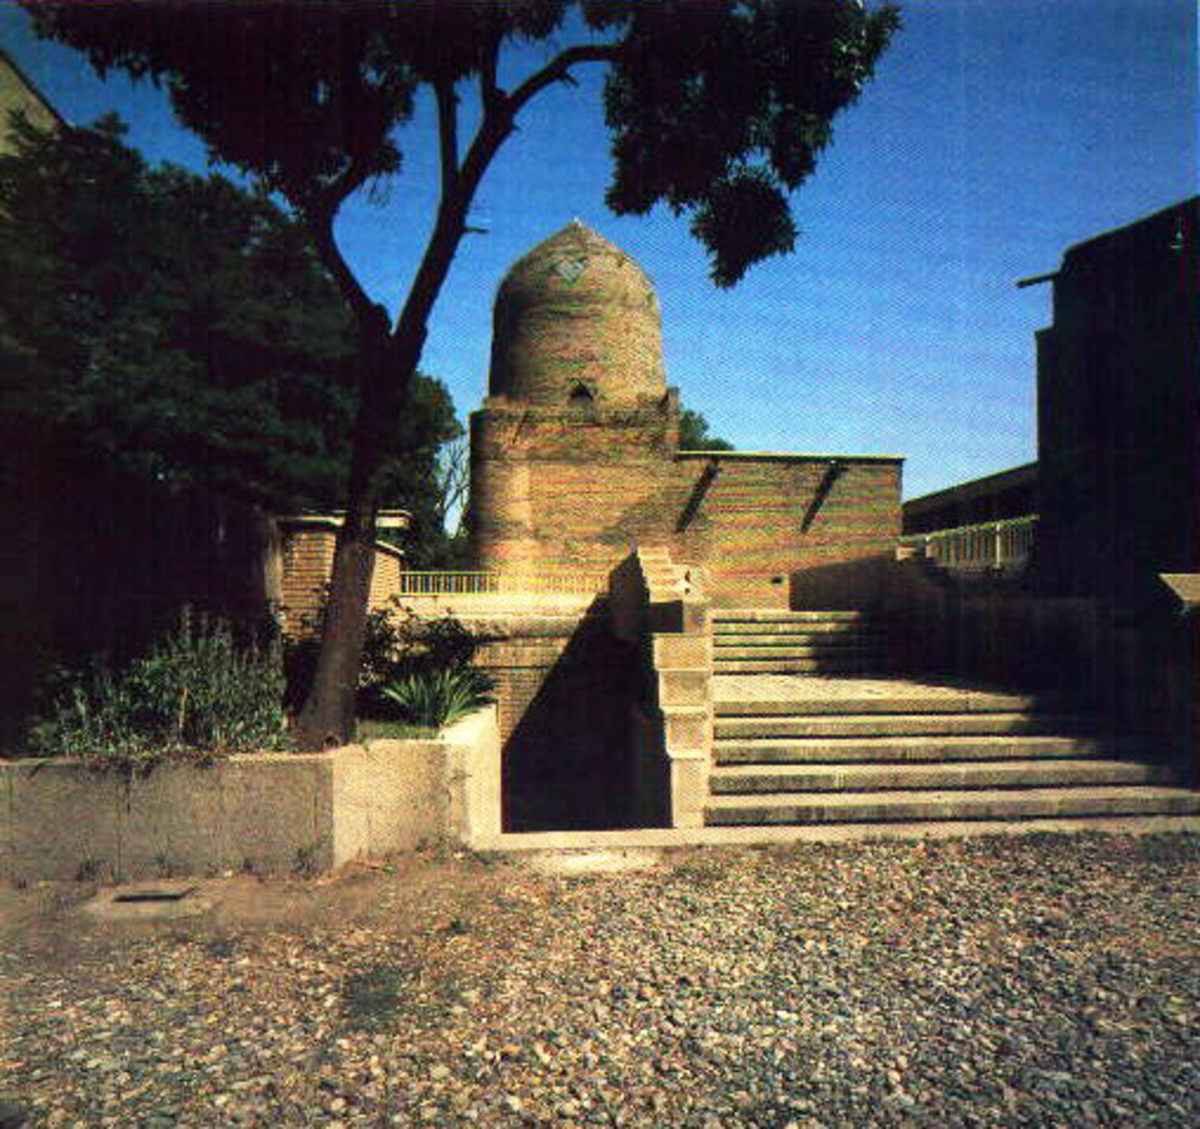 A tomb in Iran, believed to belong to Esther and her uncle Mordecai